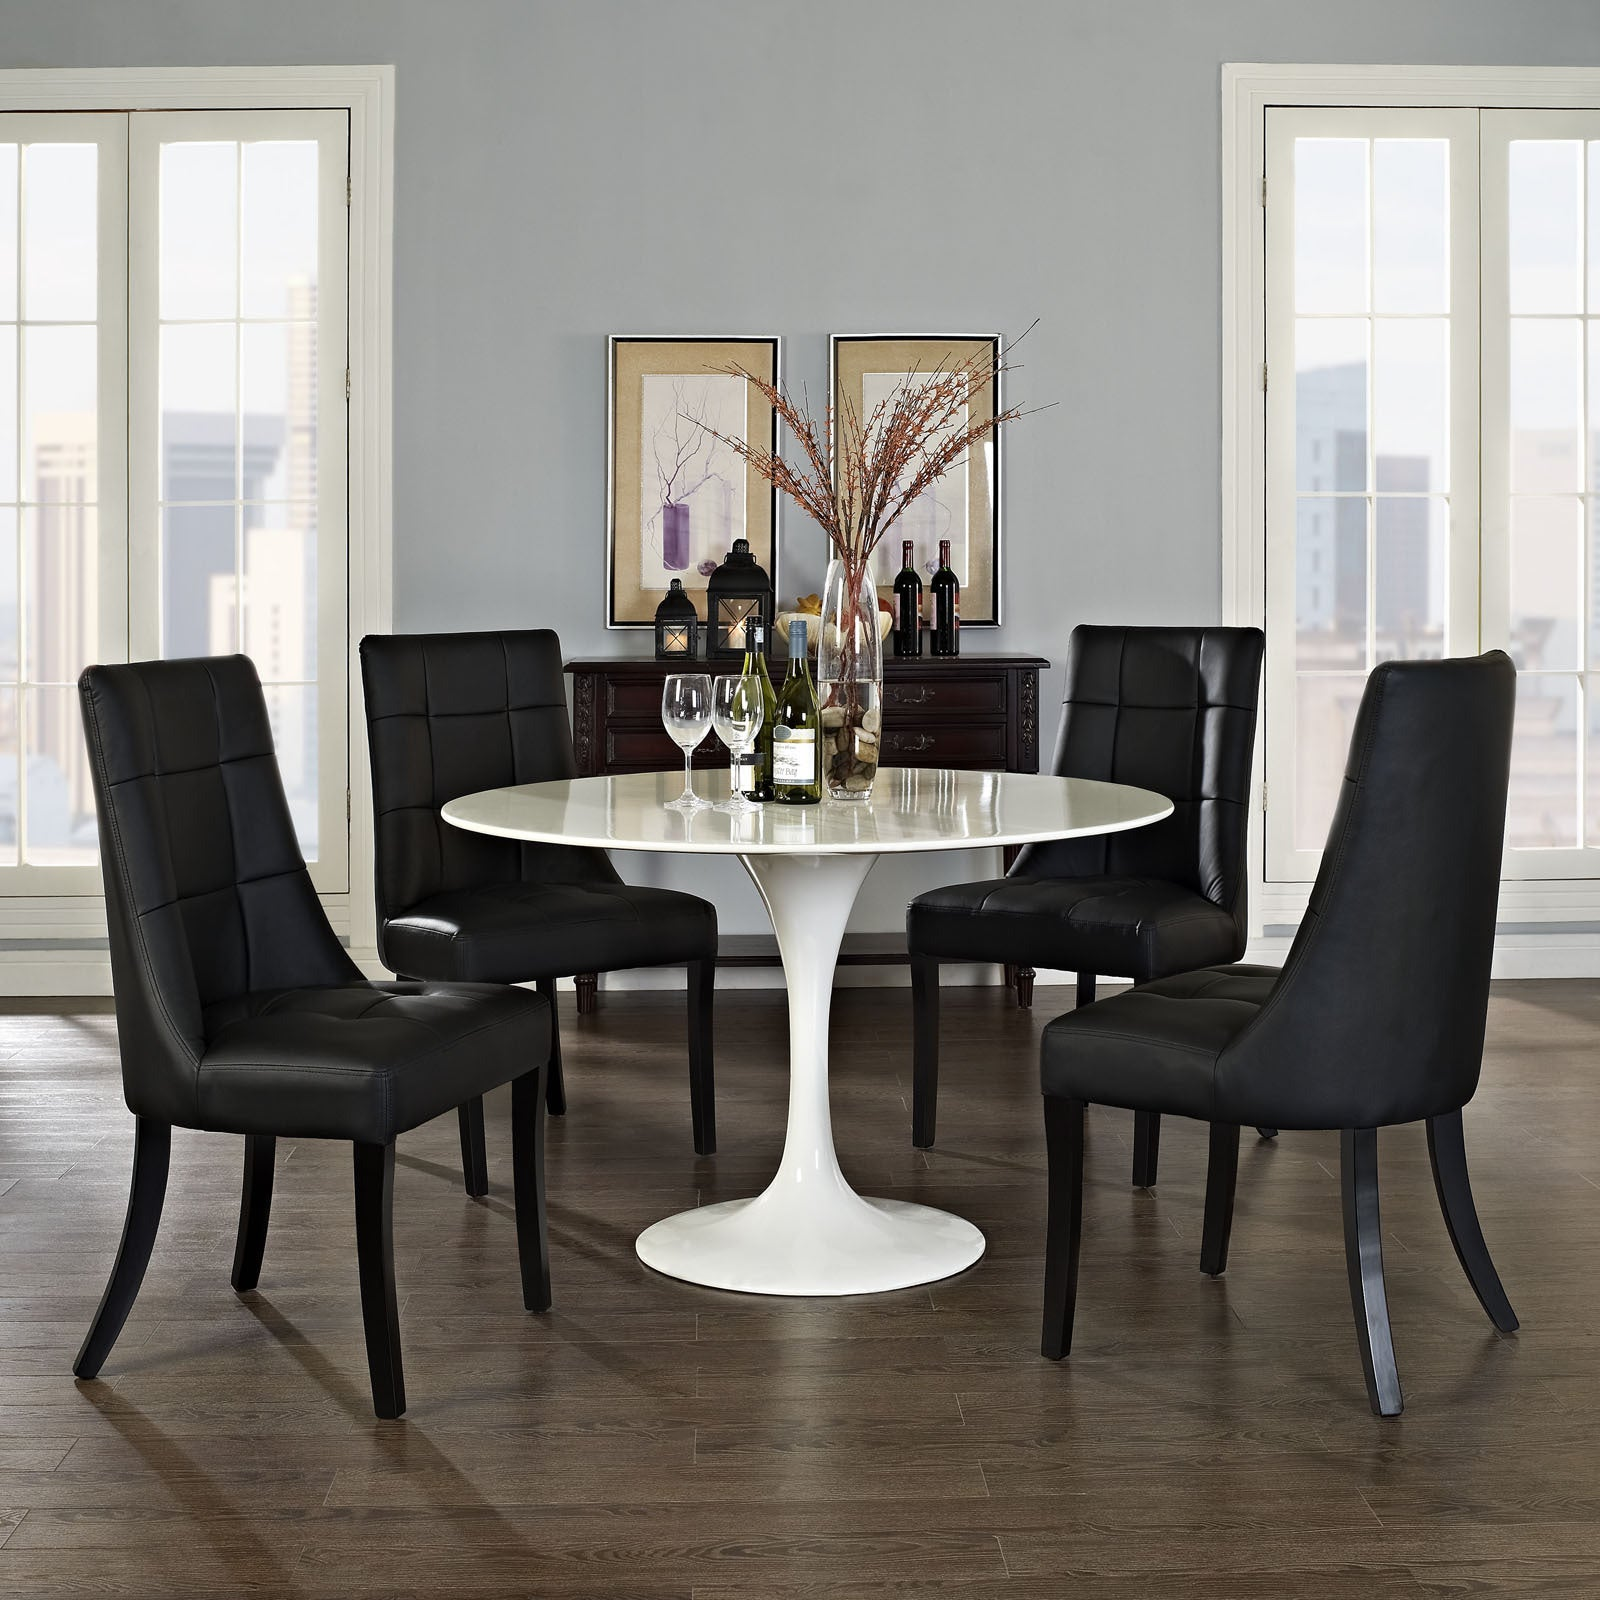 Noblesse Vinyl Dining Chair (Set Of 4)   Free Shipping Today   Overstock    16976012